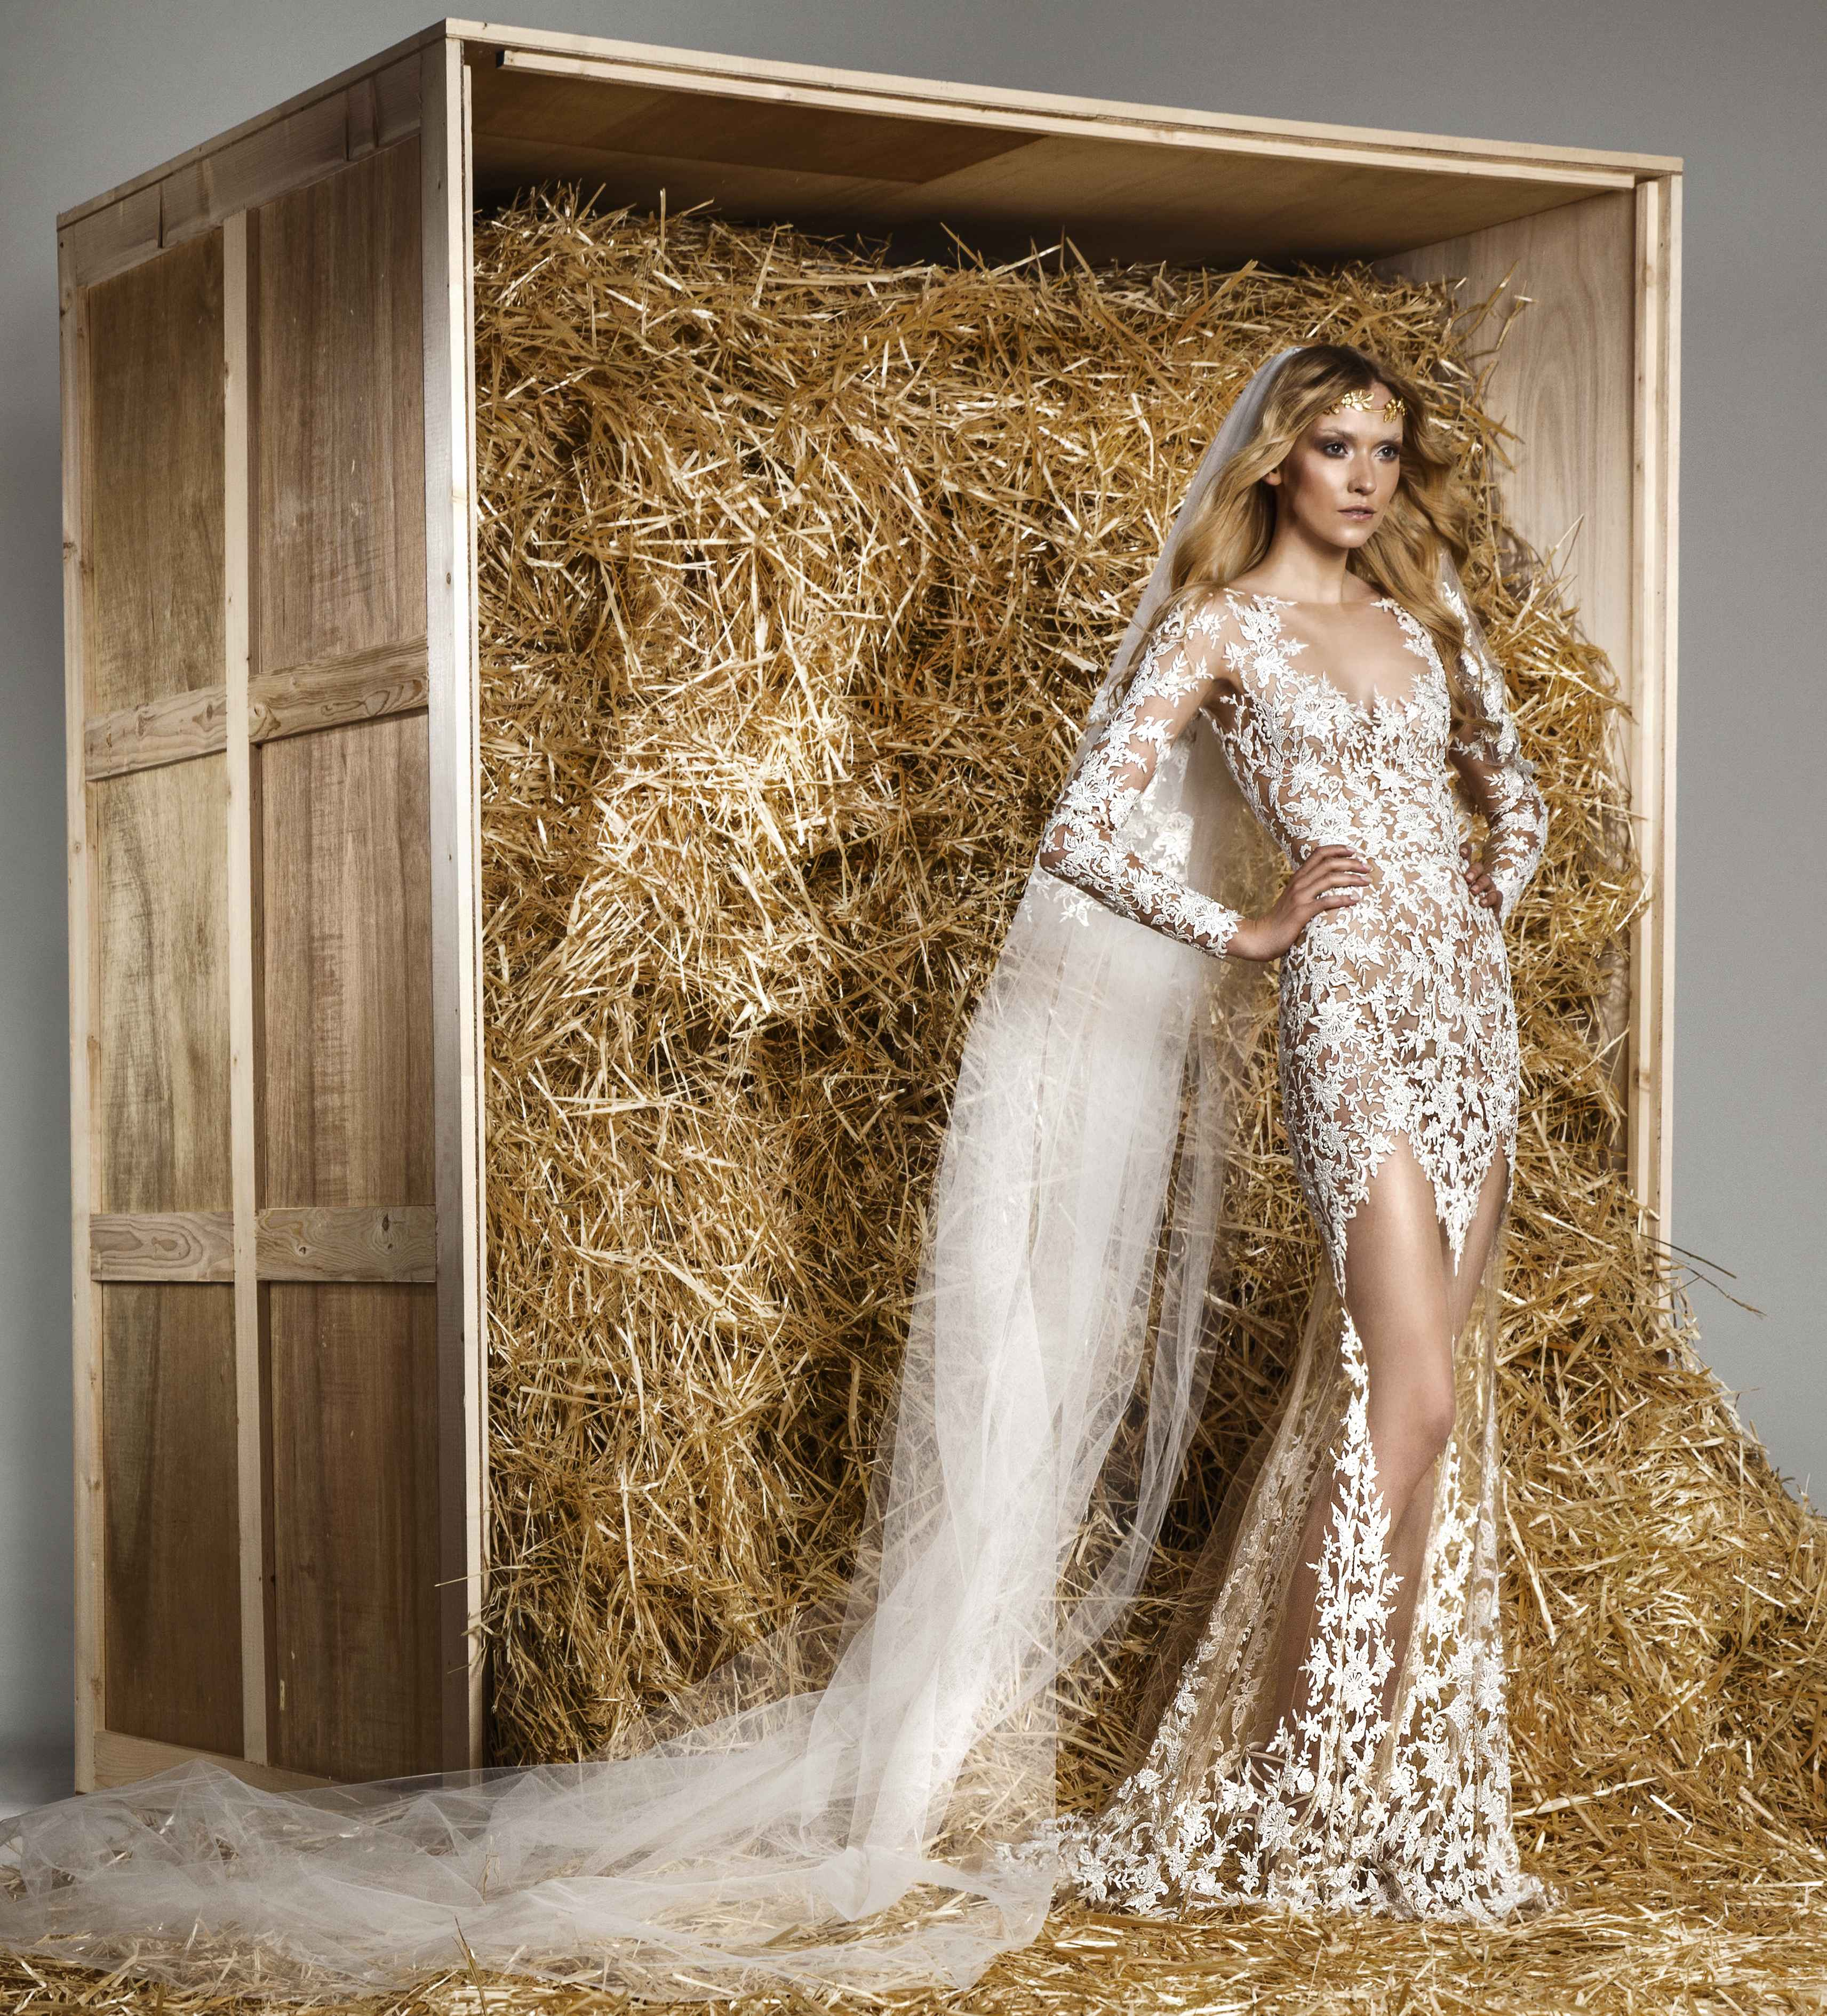 Bridal dreams: Zuhair Murad now available in Singapore - Lifestyle ...